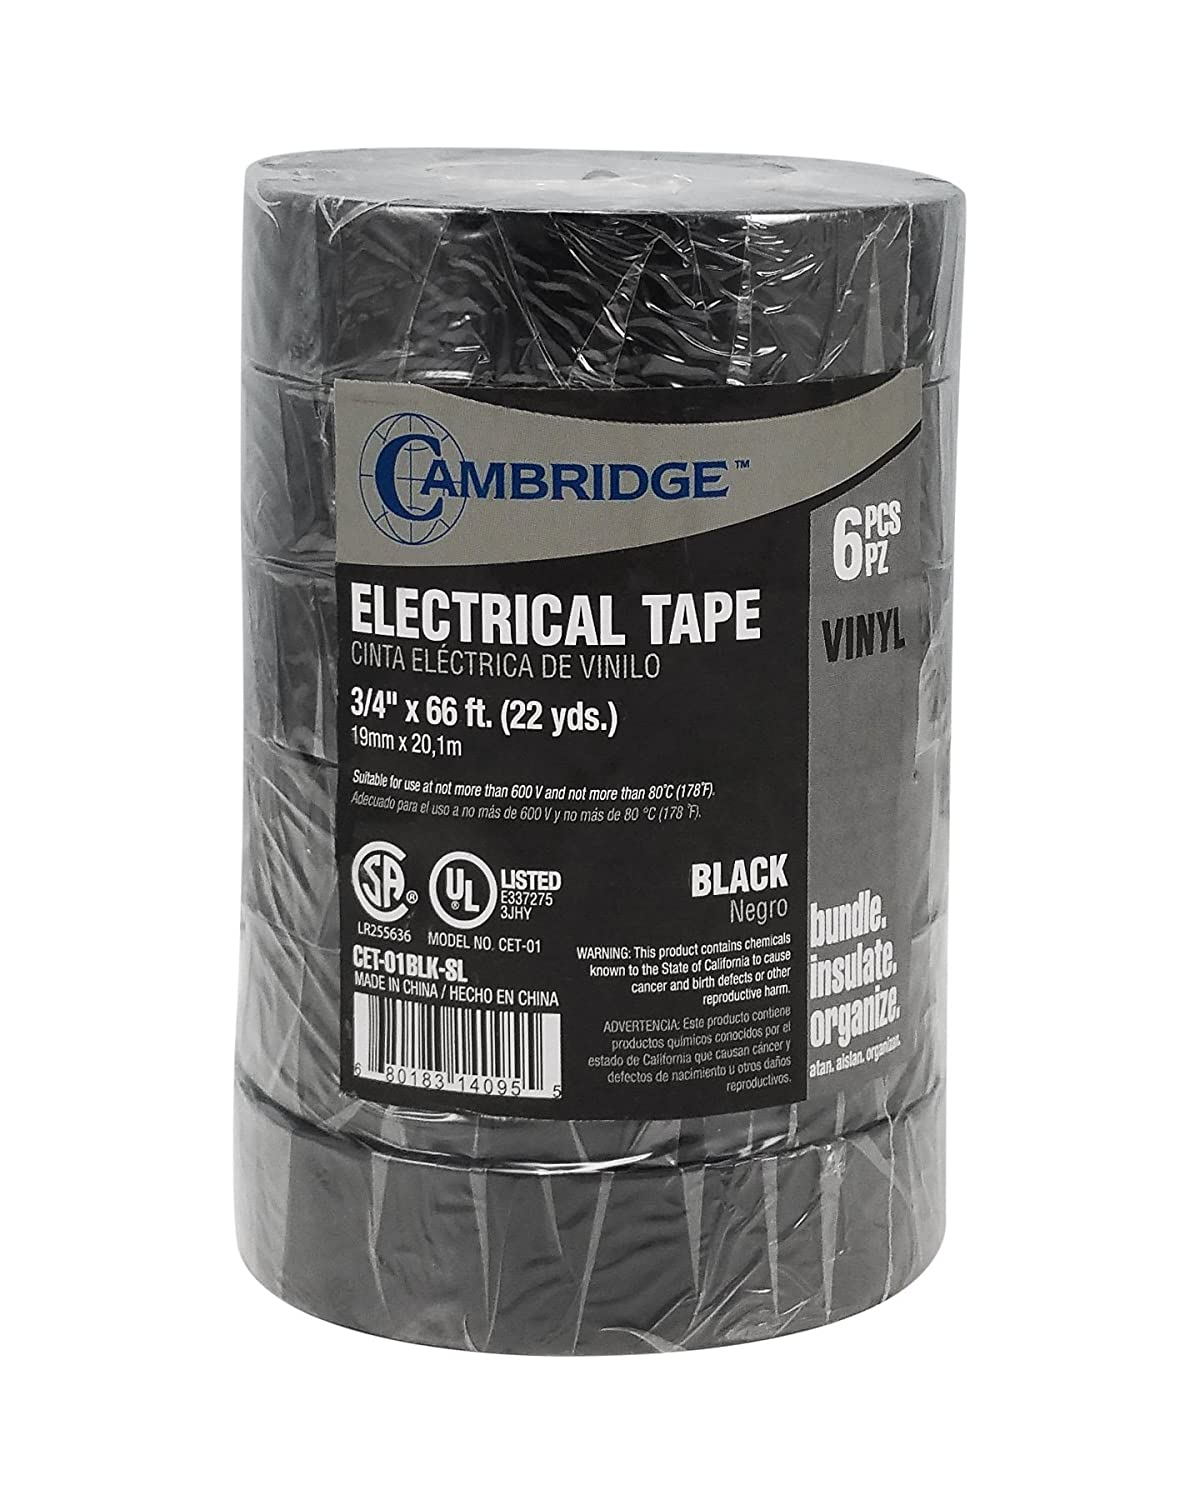 "Cambridge Professional Electrical Tape, Value Pack. Black, 3/4"" x 66'. 6 Rolls totaling 396' (132 Yards)"